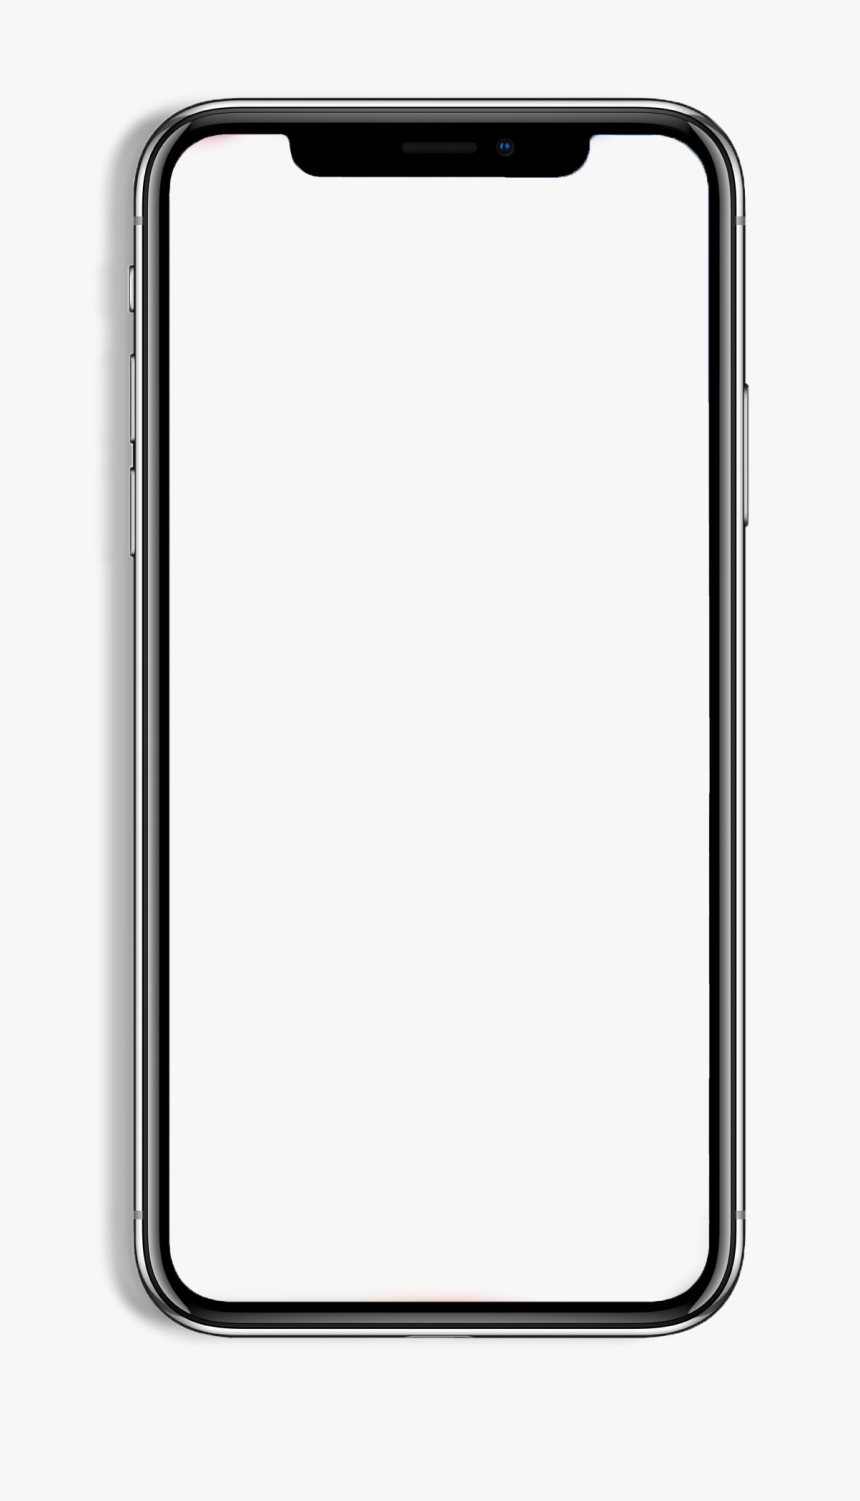 Iphone X Device Frame Png, Transparent Png, Free Download